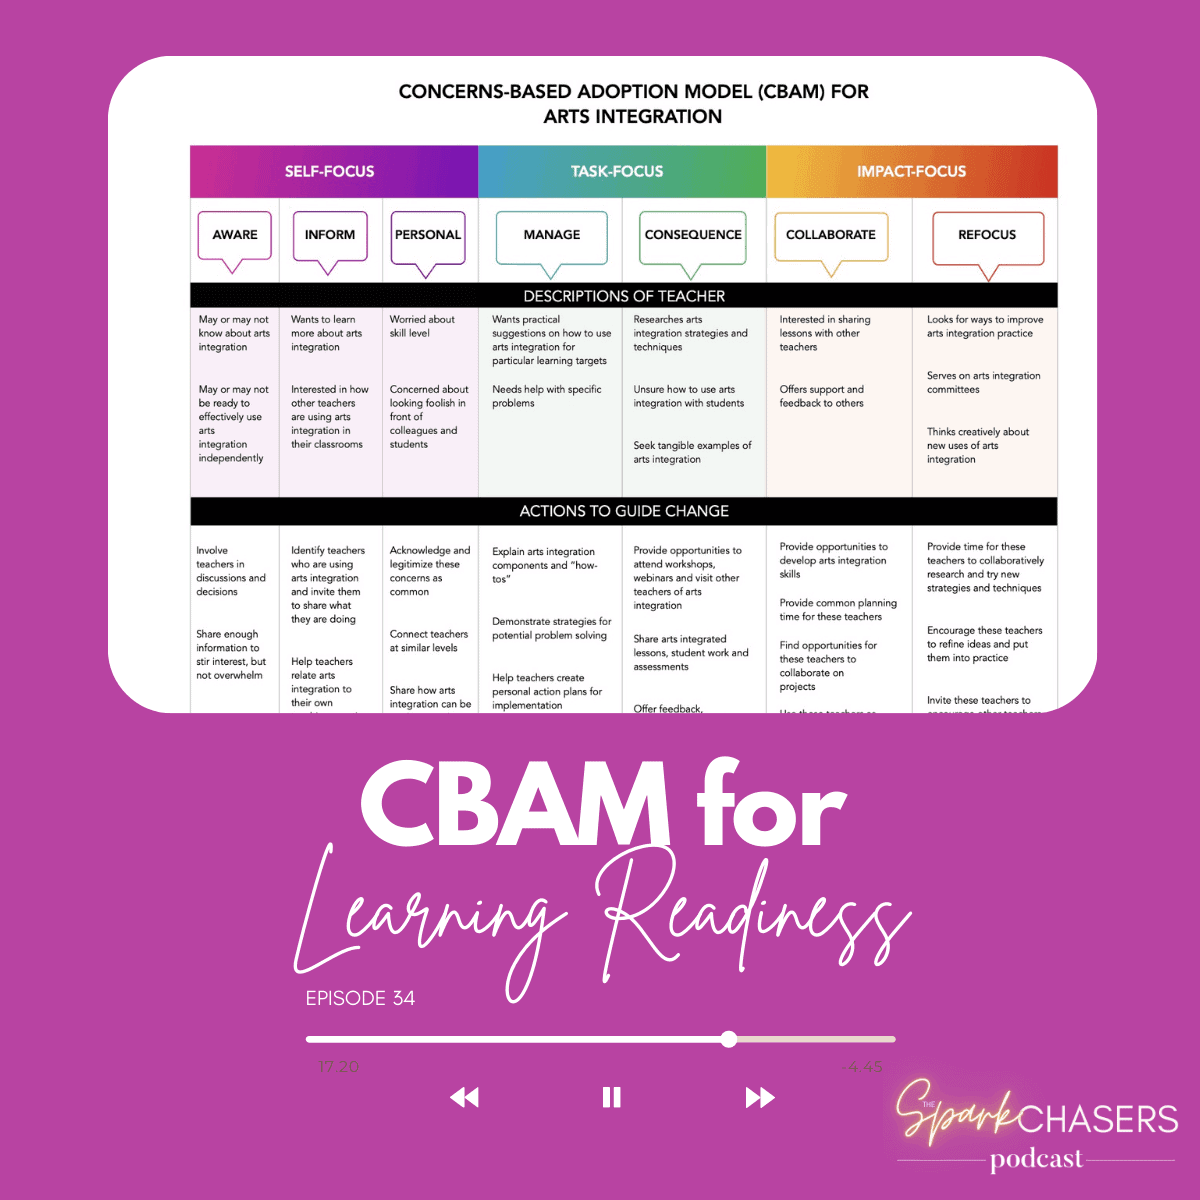 CBAM for Learning Readiness